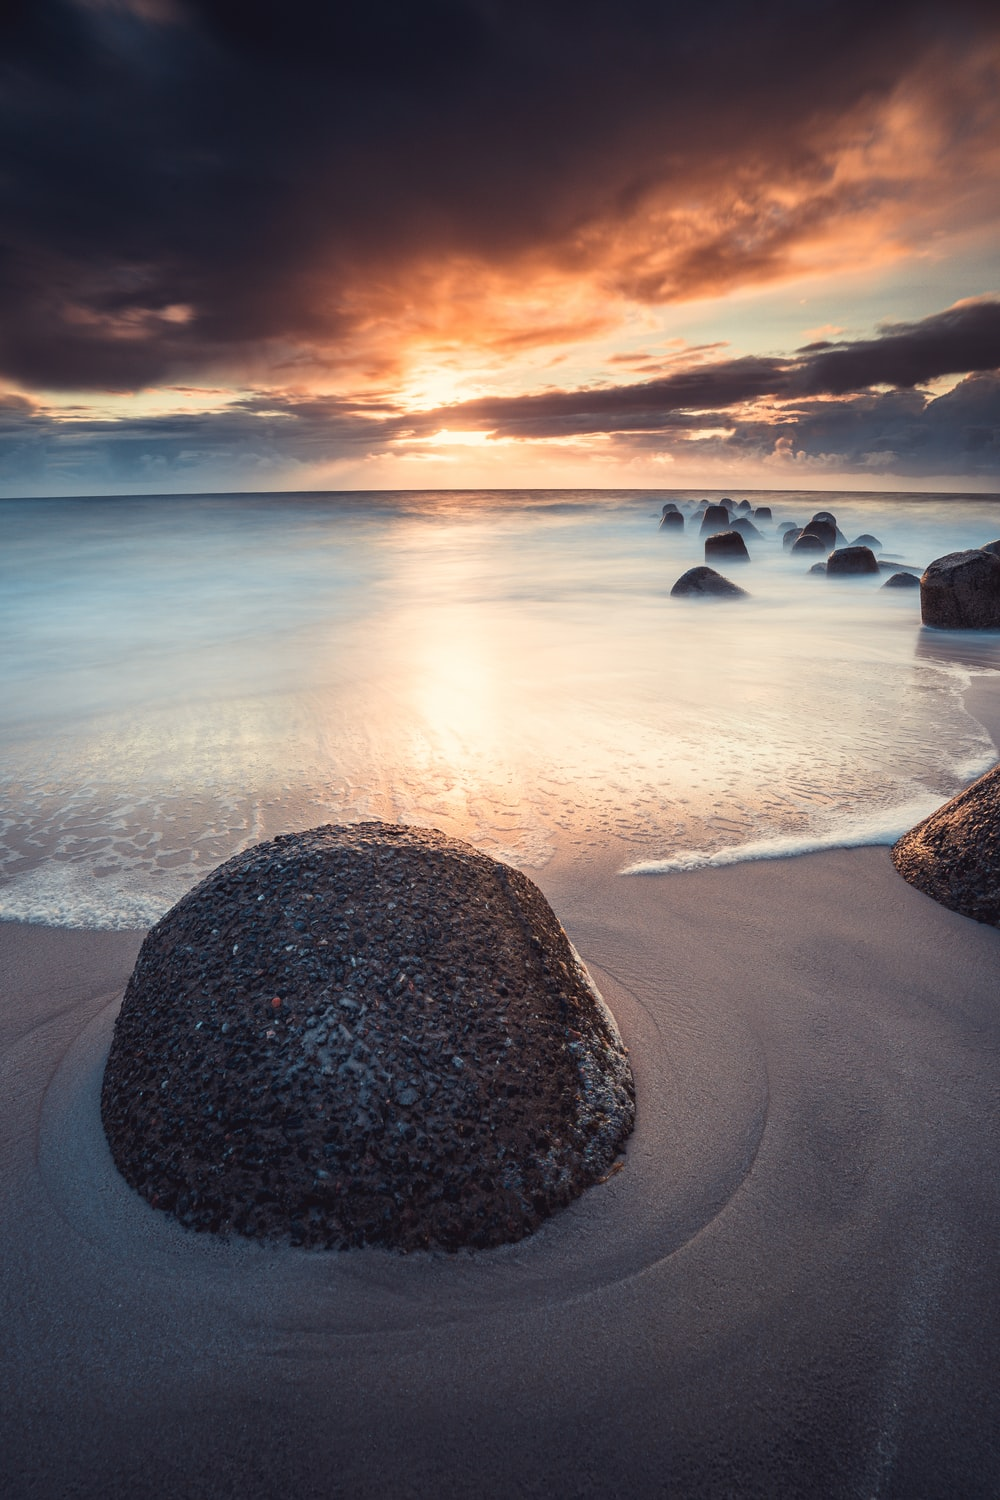 brown rock formation on seashore during sunset